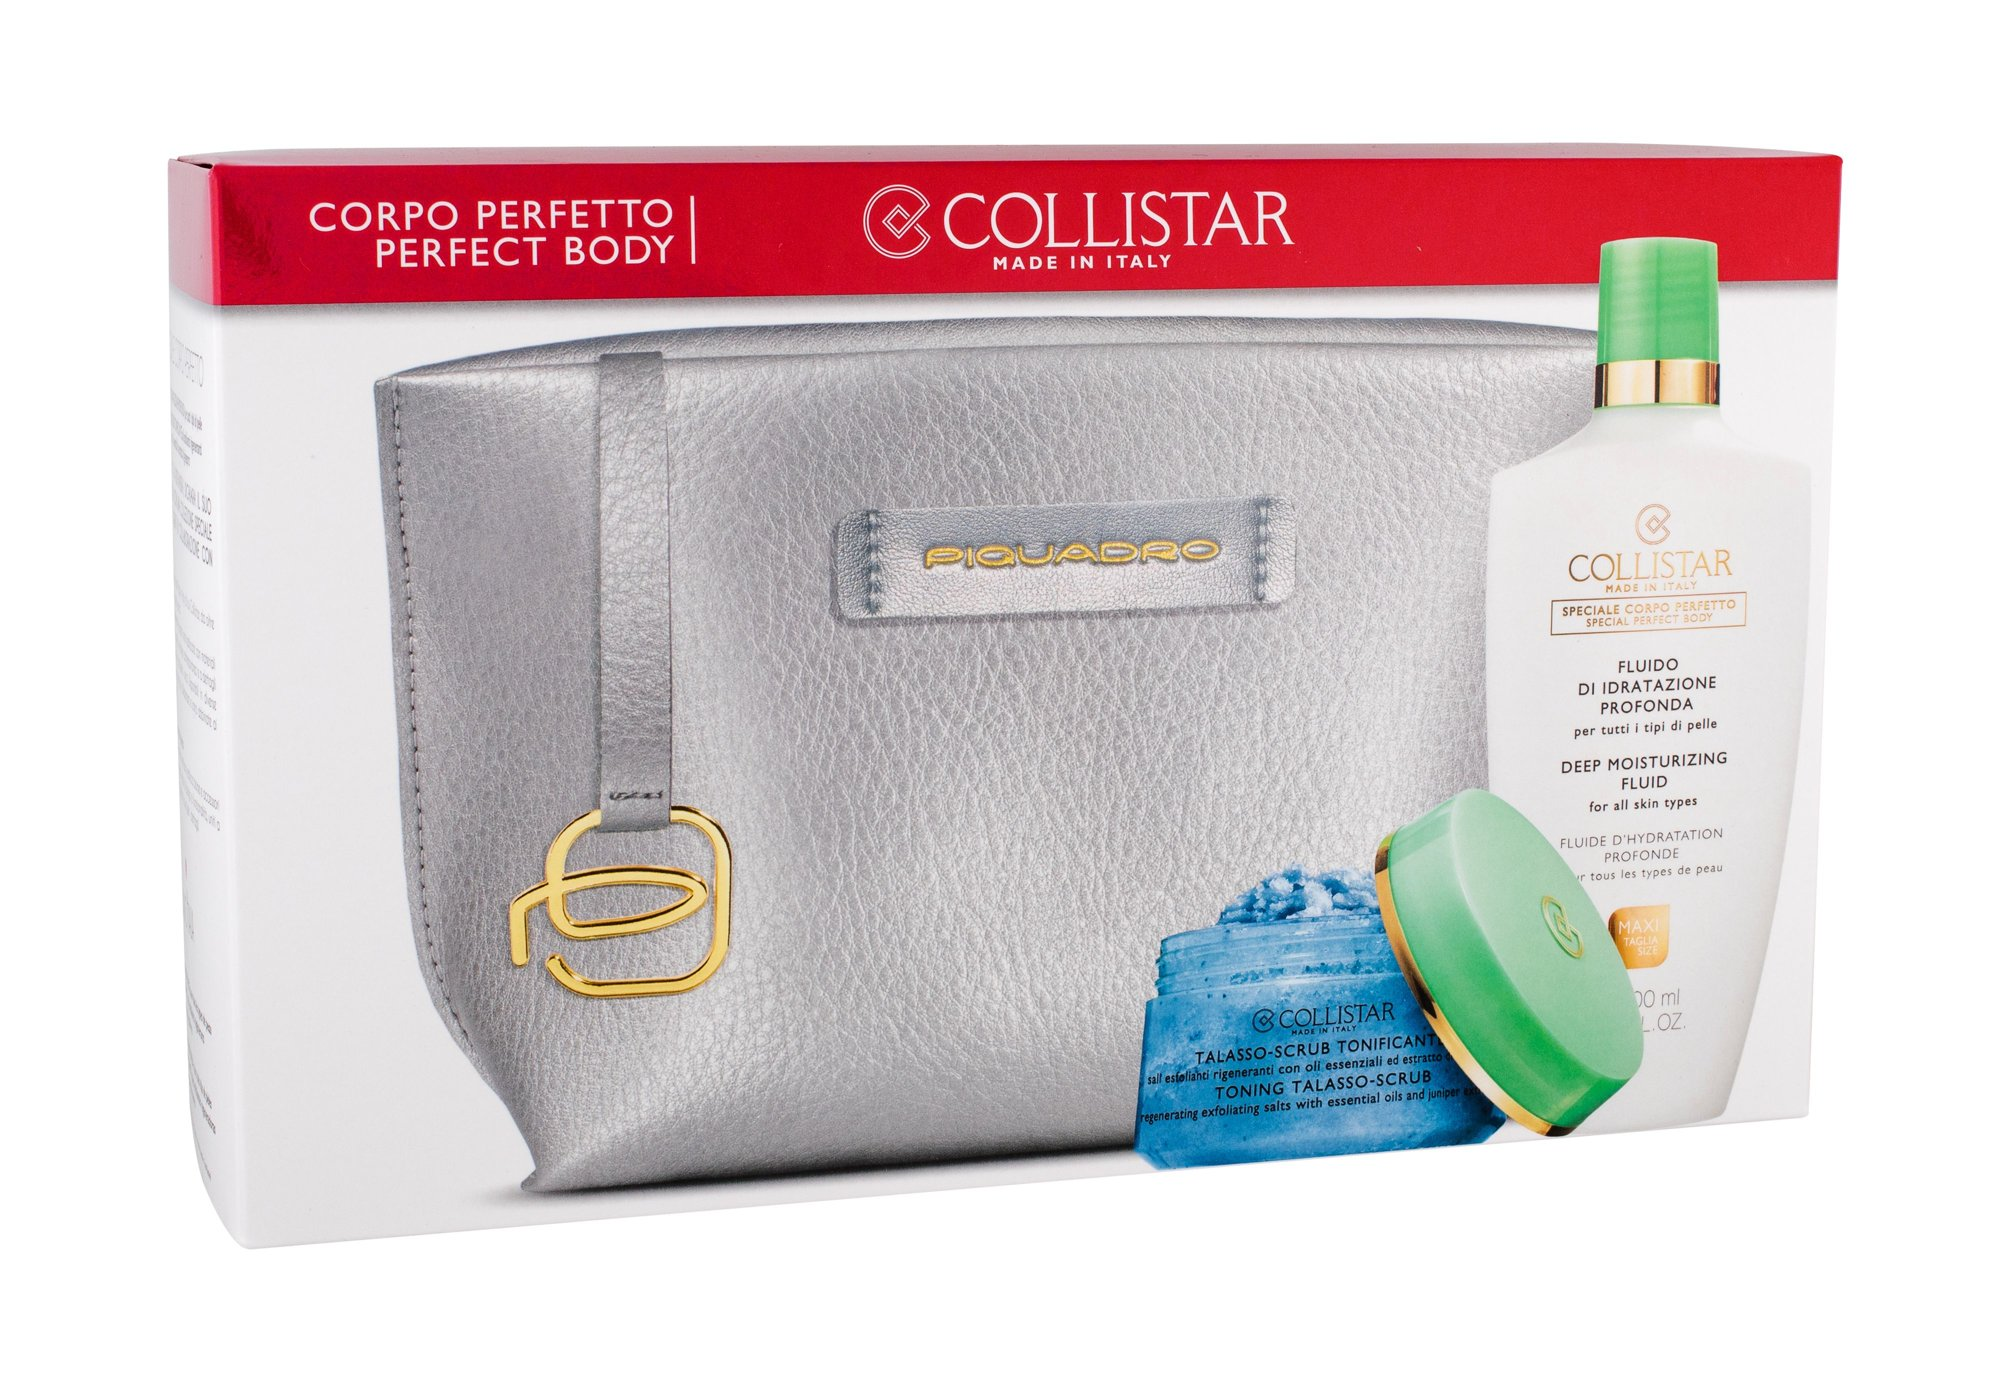 Collistar Special Perfect Body Body Lotion 400ml